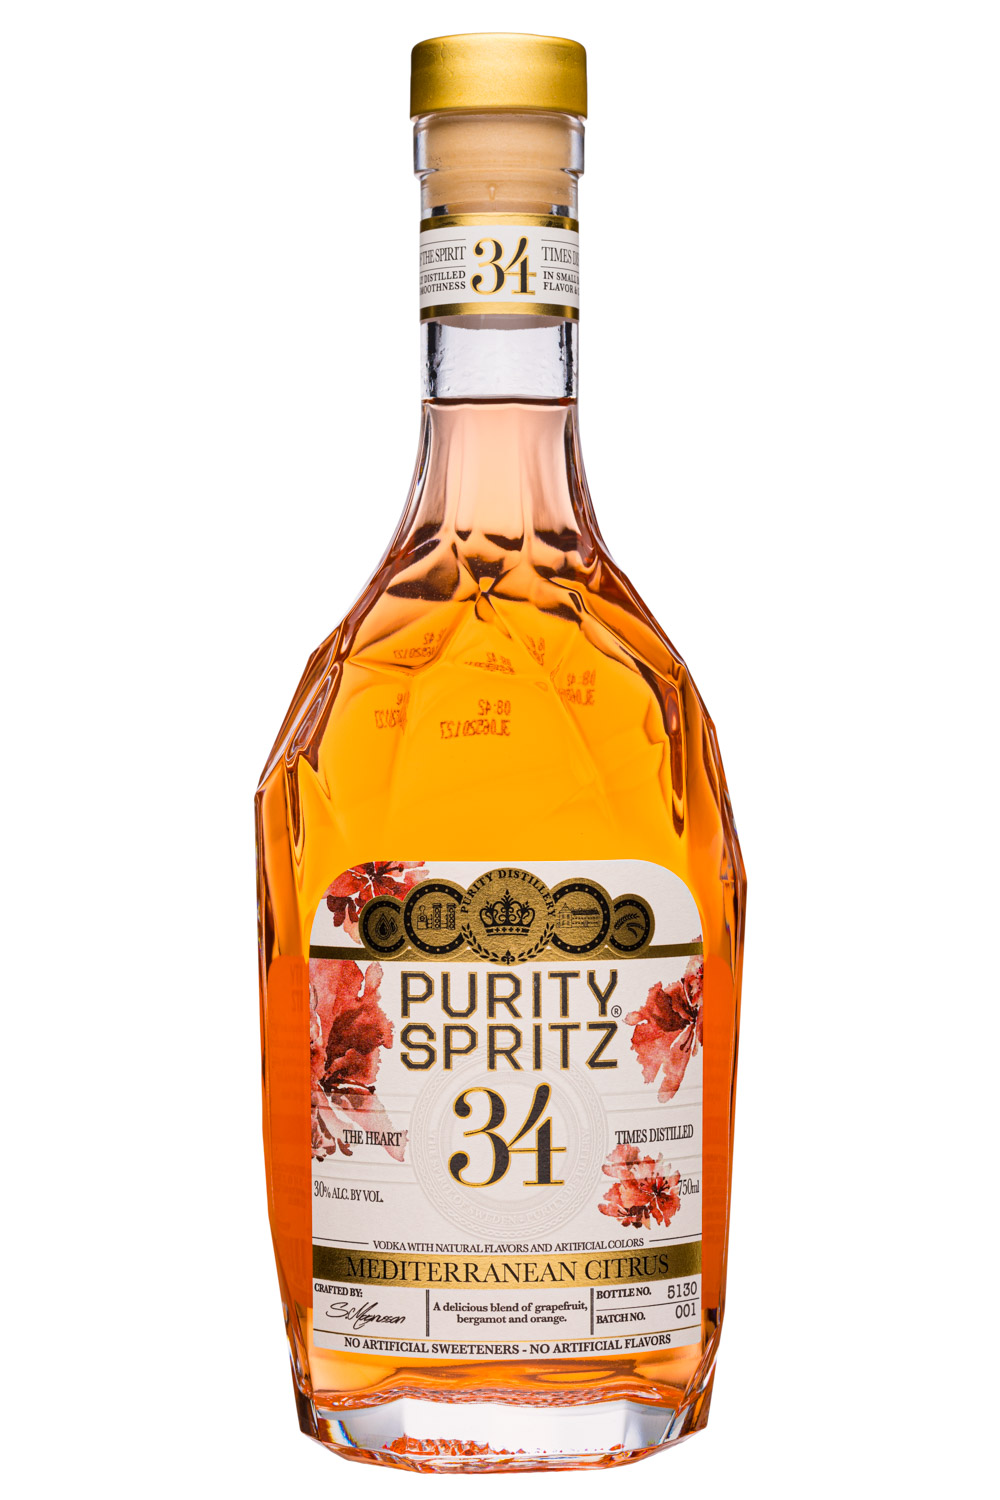 Purity Spritz